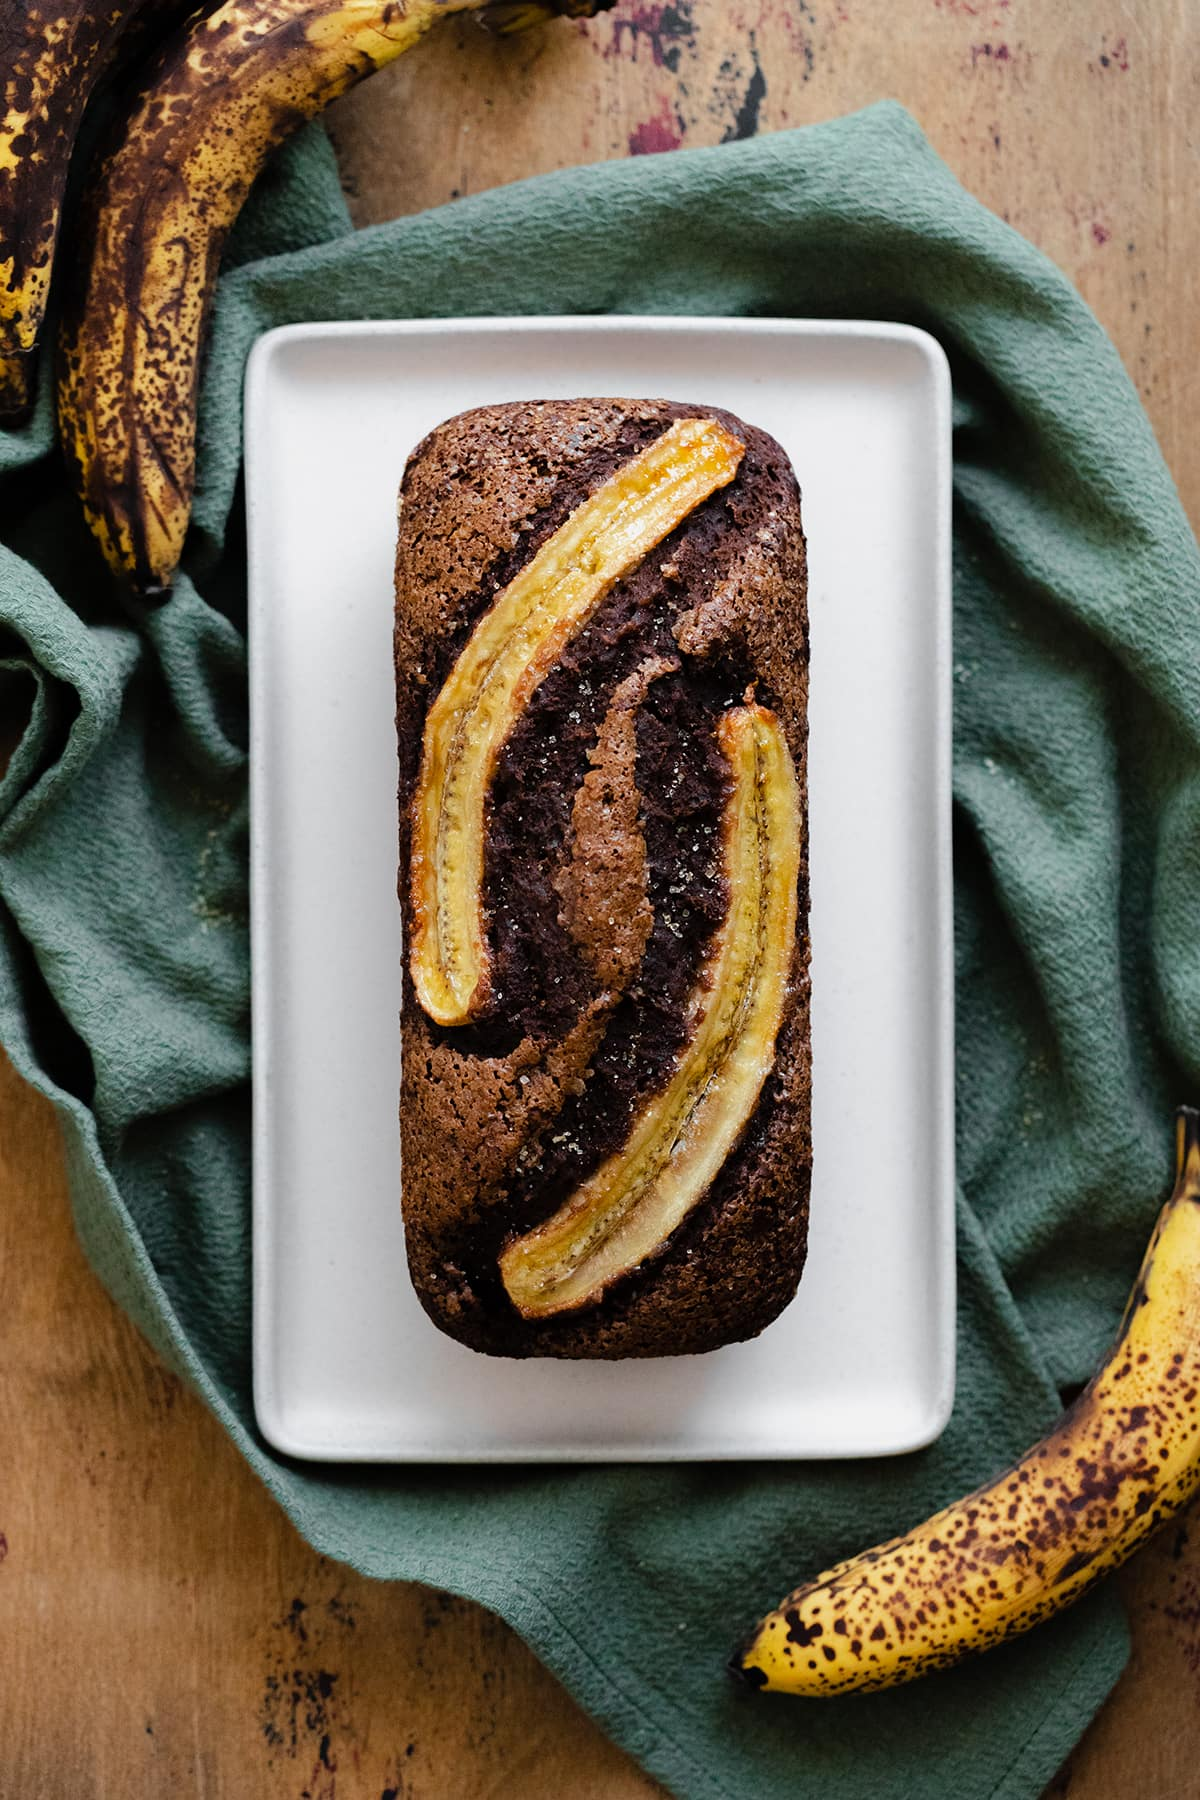 A photo of Caramelized Chocolate Banana Bread on a beige plate, green kitchen towel, and light wooden table.